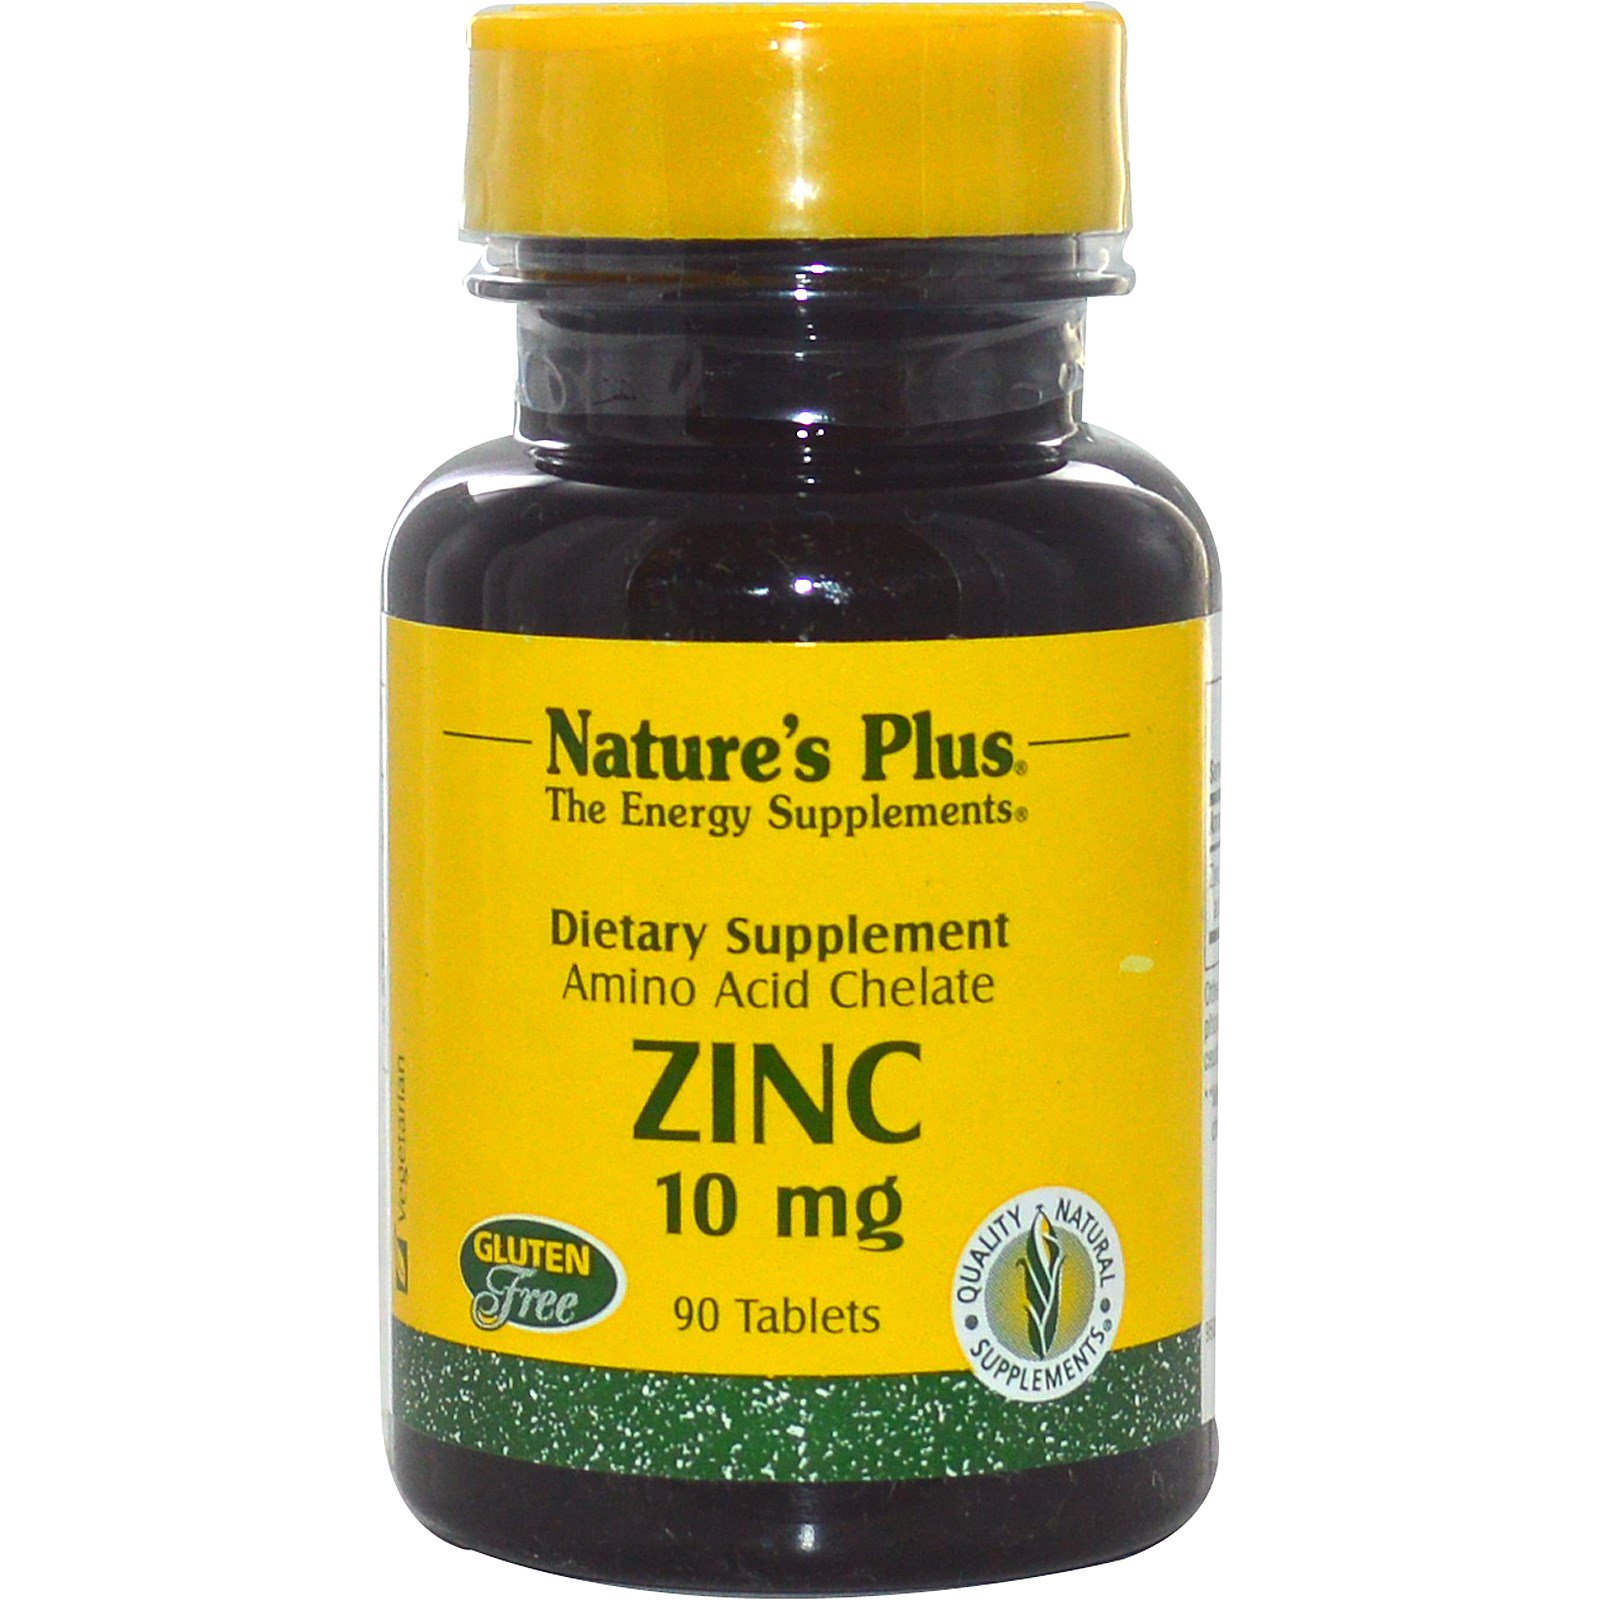 Image of Zinc, 10 mg (90 Tablets) - Nature's Plus 0097467036307